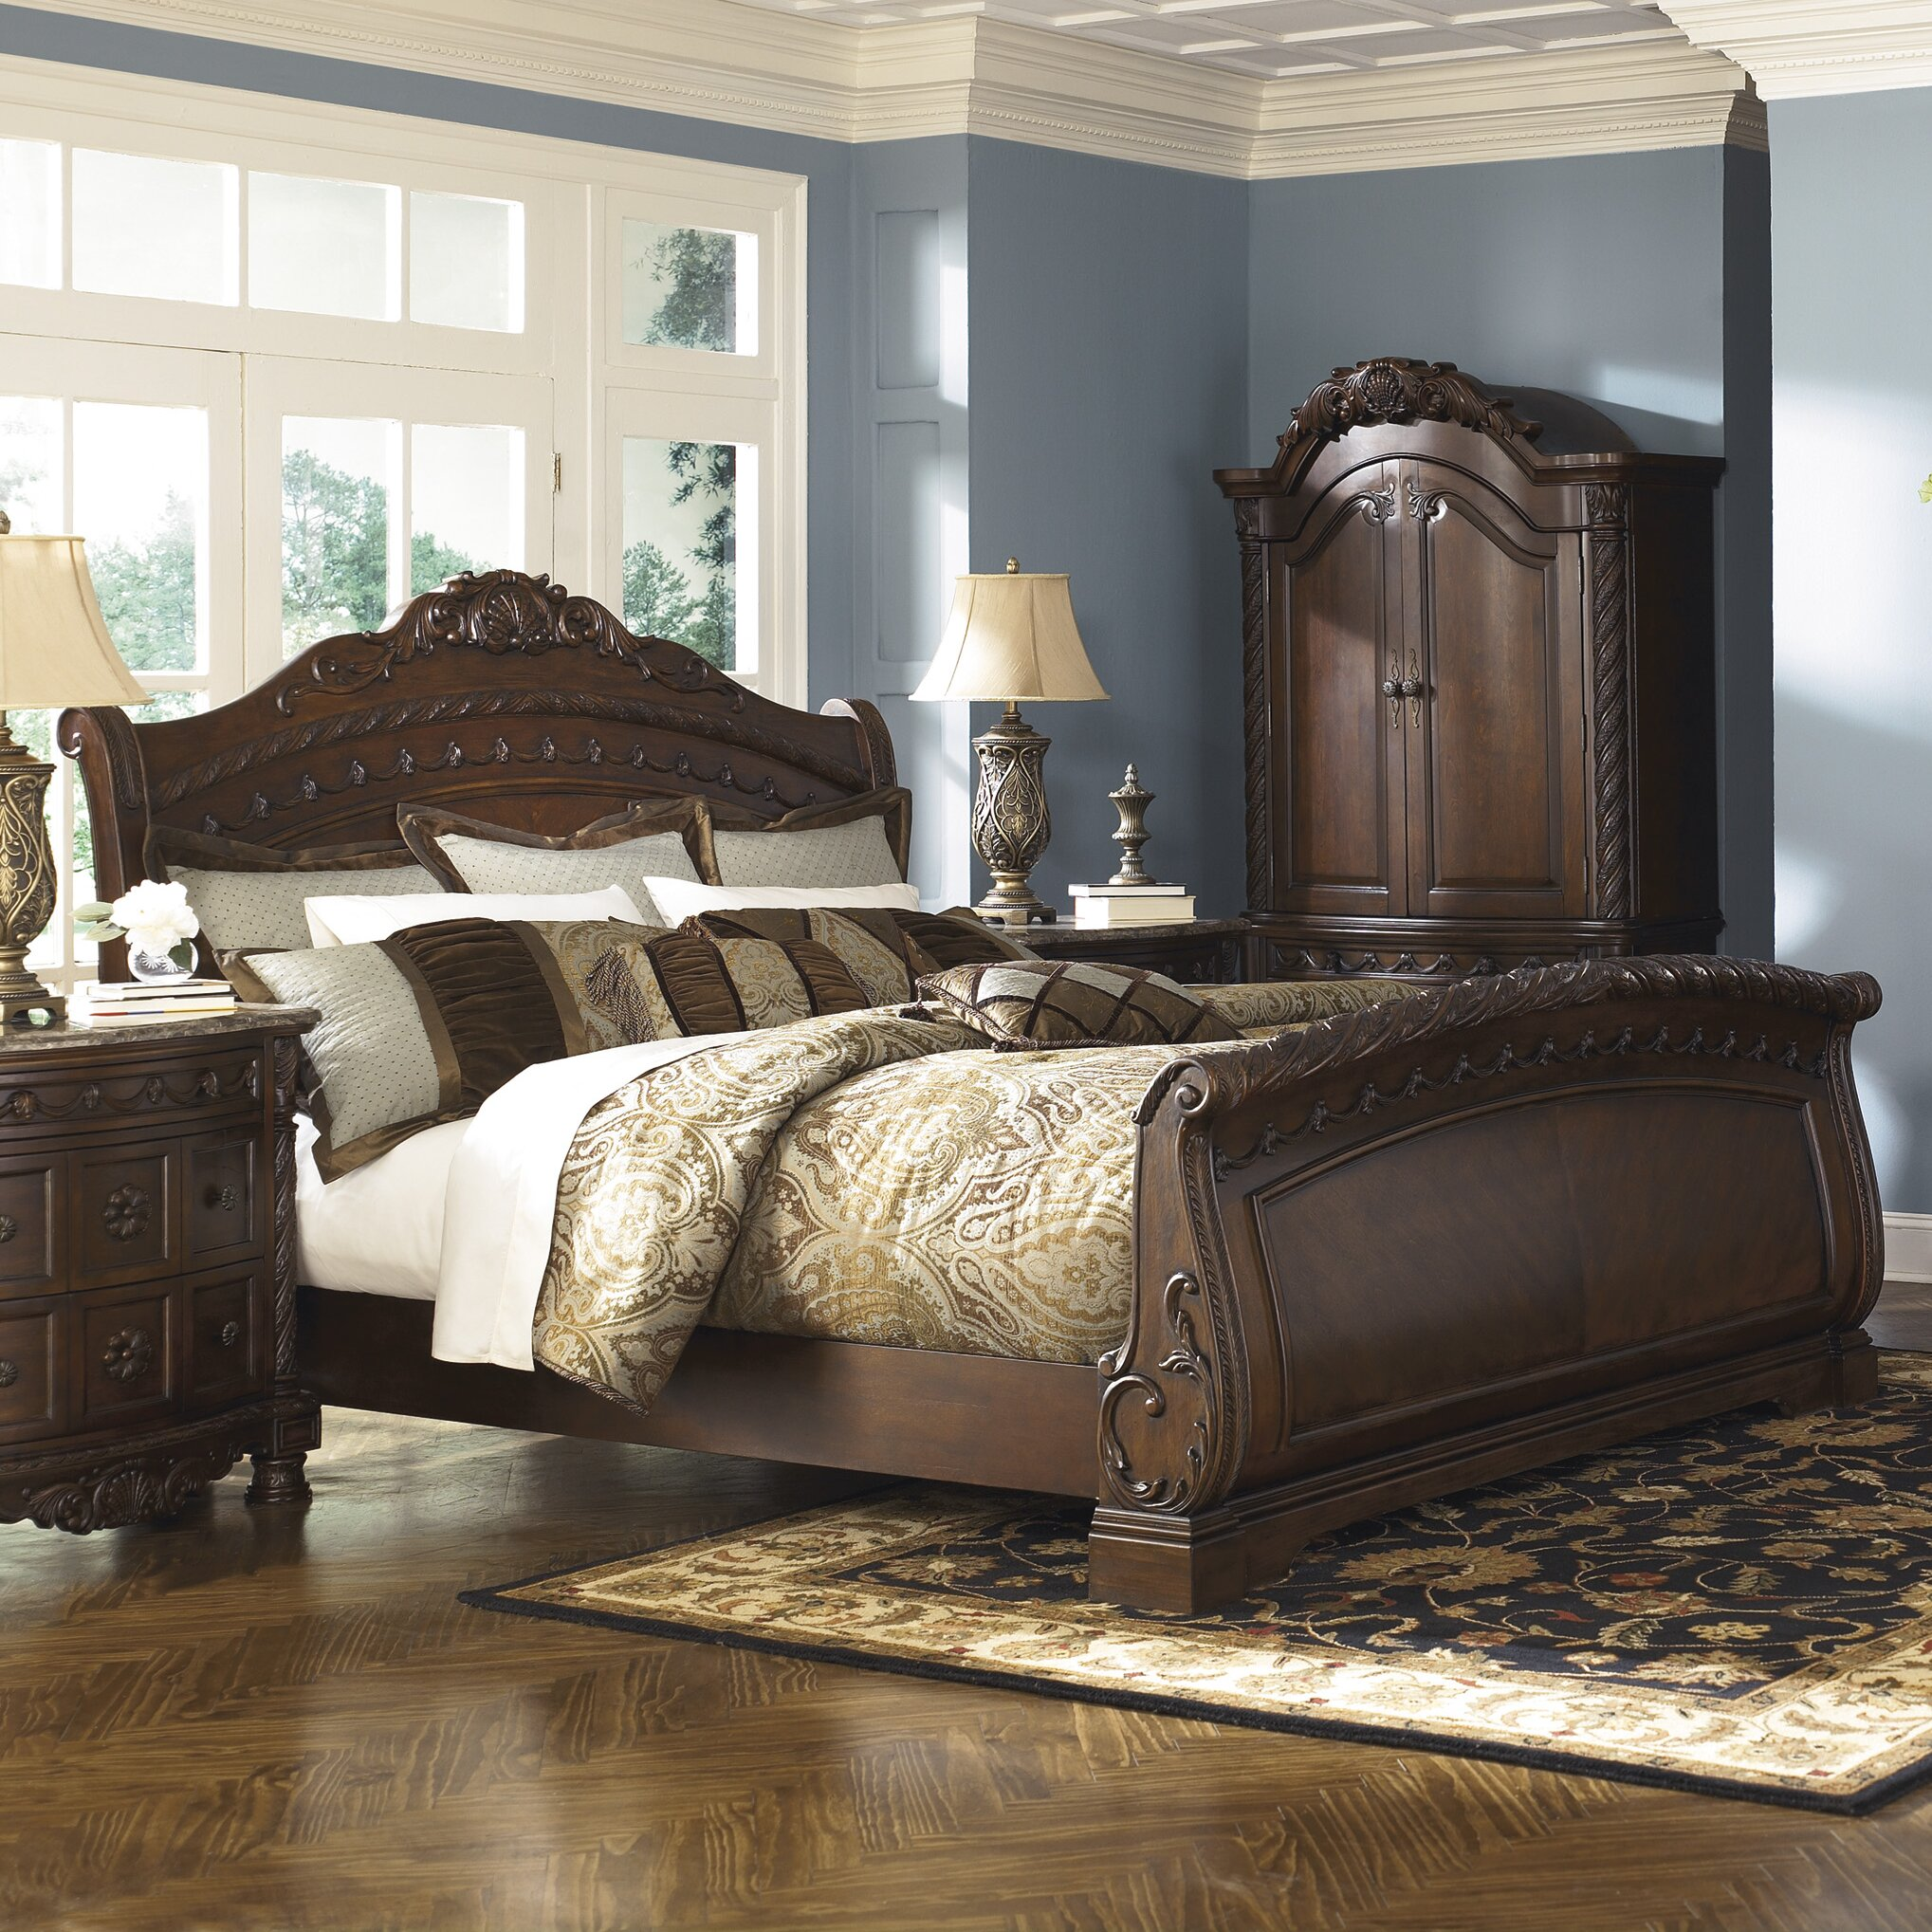 Shore Sleigh Bed 28 Images North Shore King Sleigh Bed